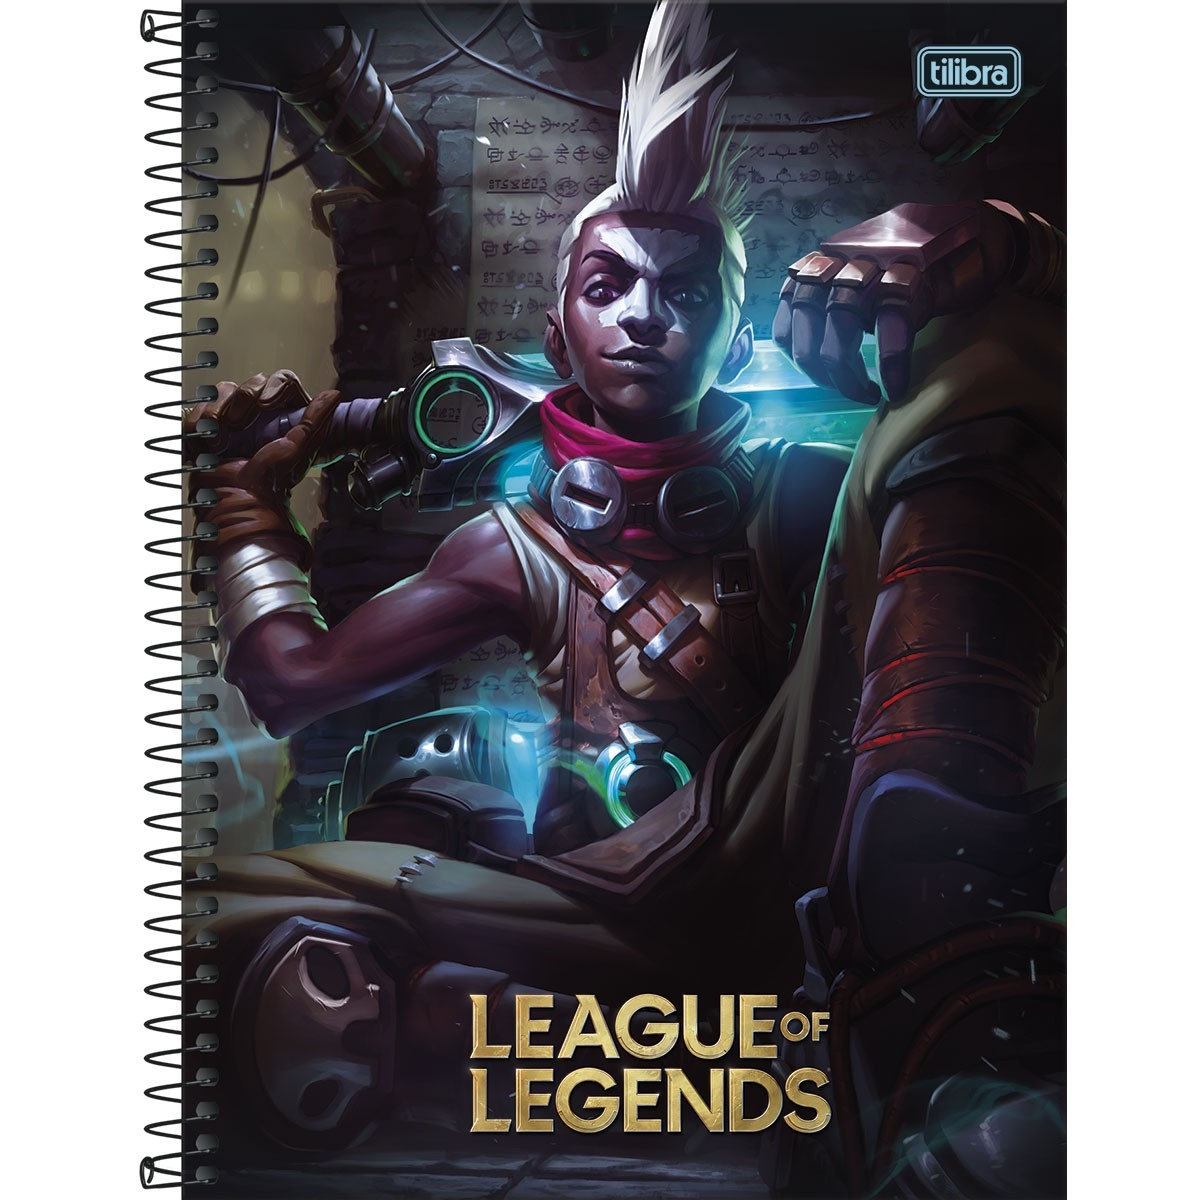 Caderno Espiral Capa Dura Universitário 10 Matérias League of Legends Ekko 160 Folhas